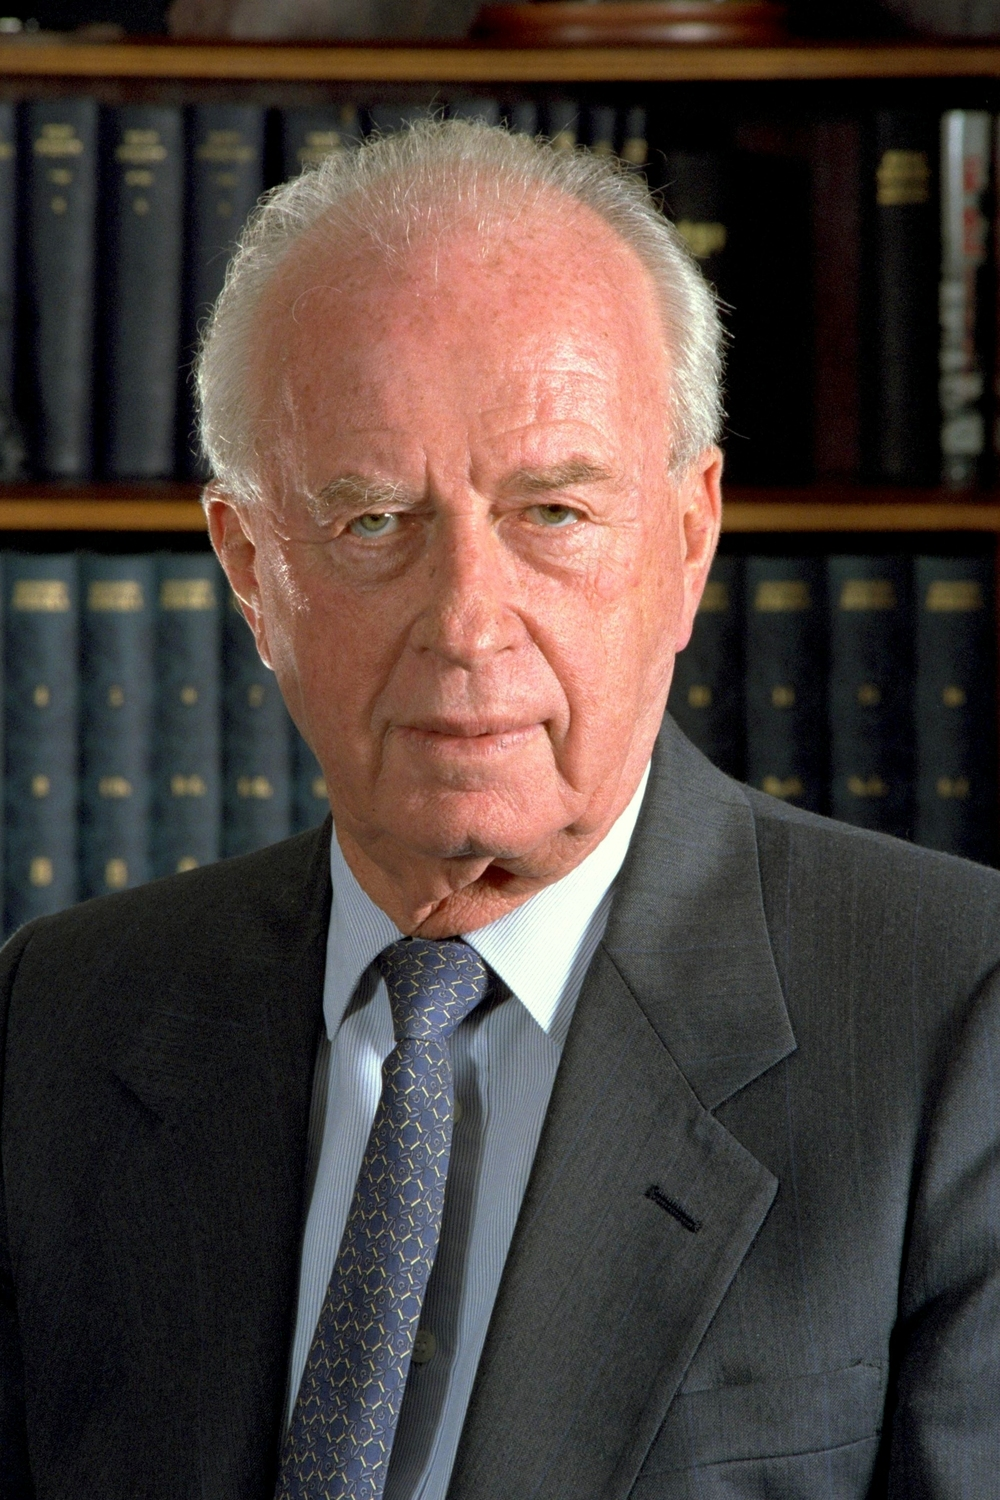 Yitzhak Rabin. Credit: Wikimedia Commons.